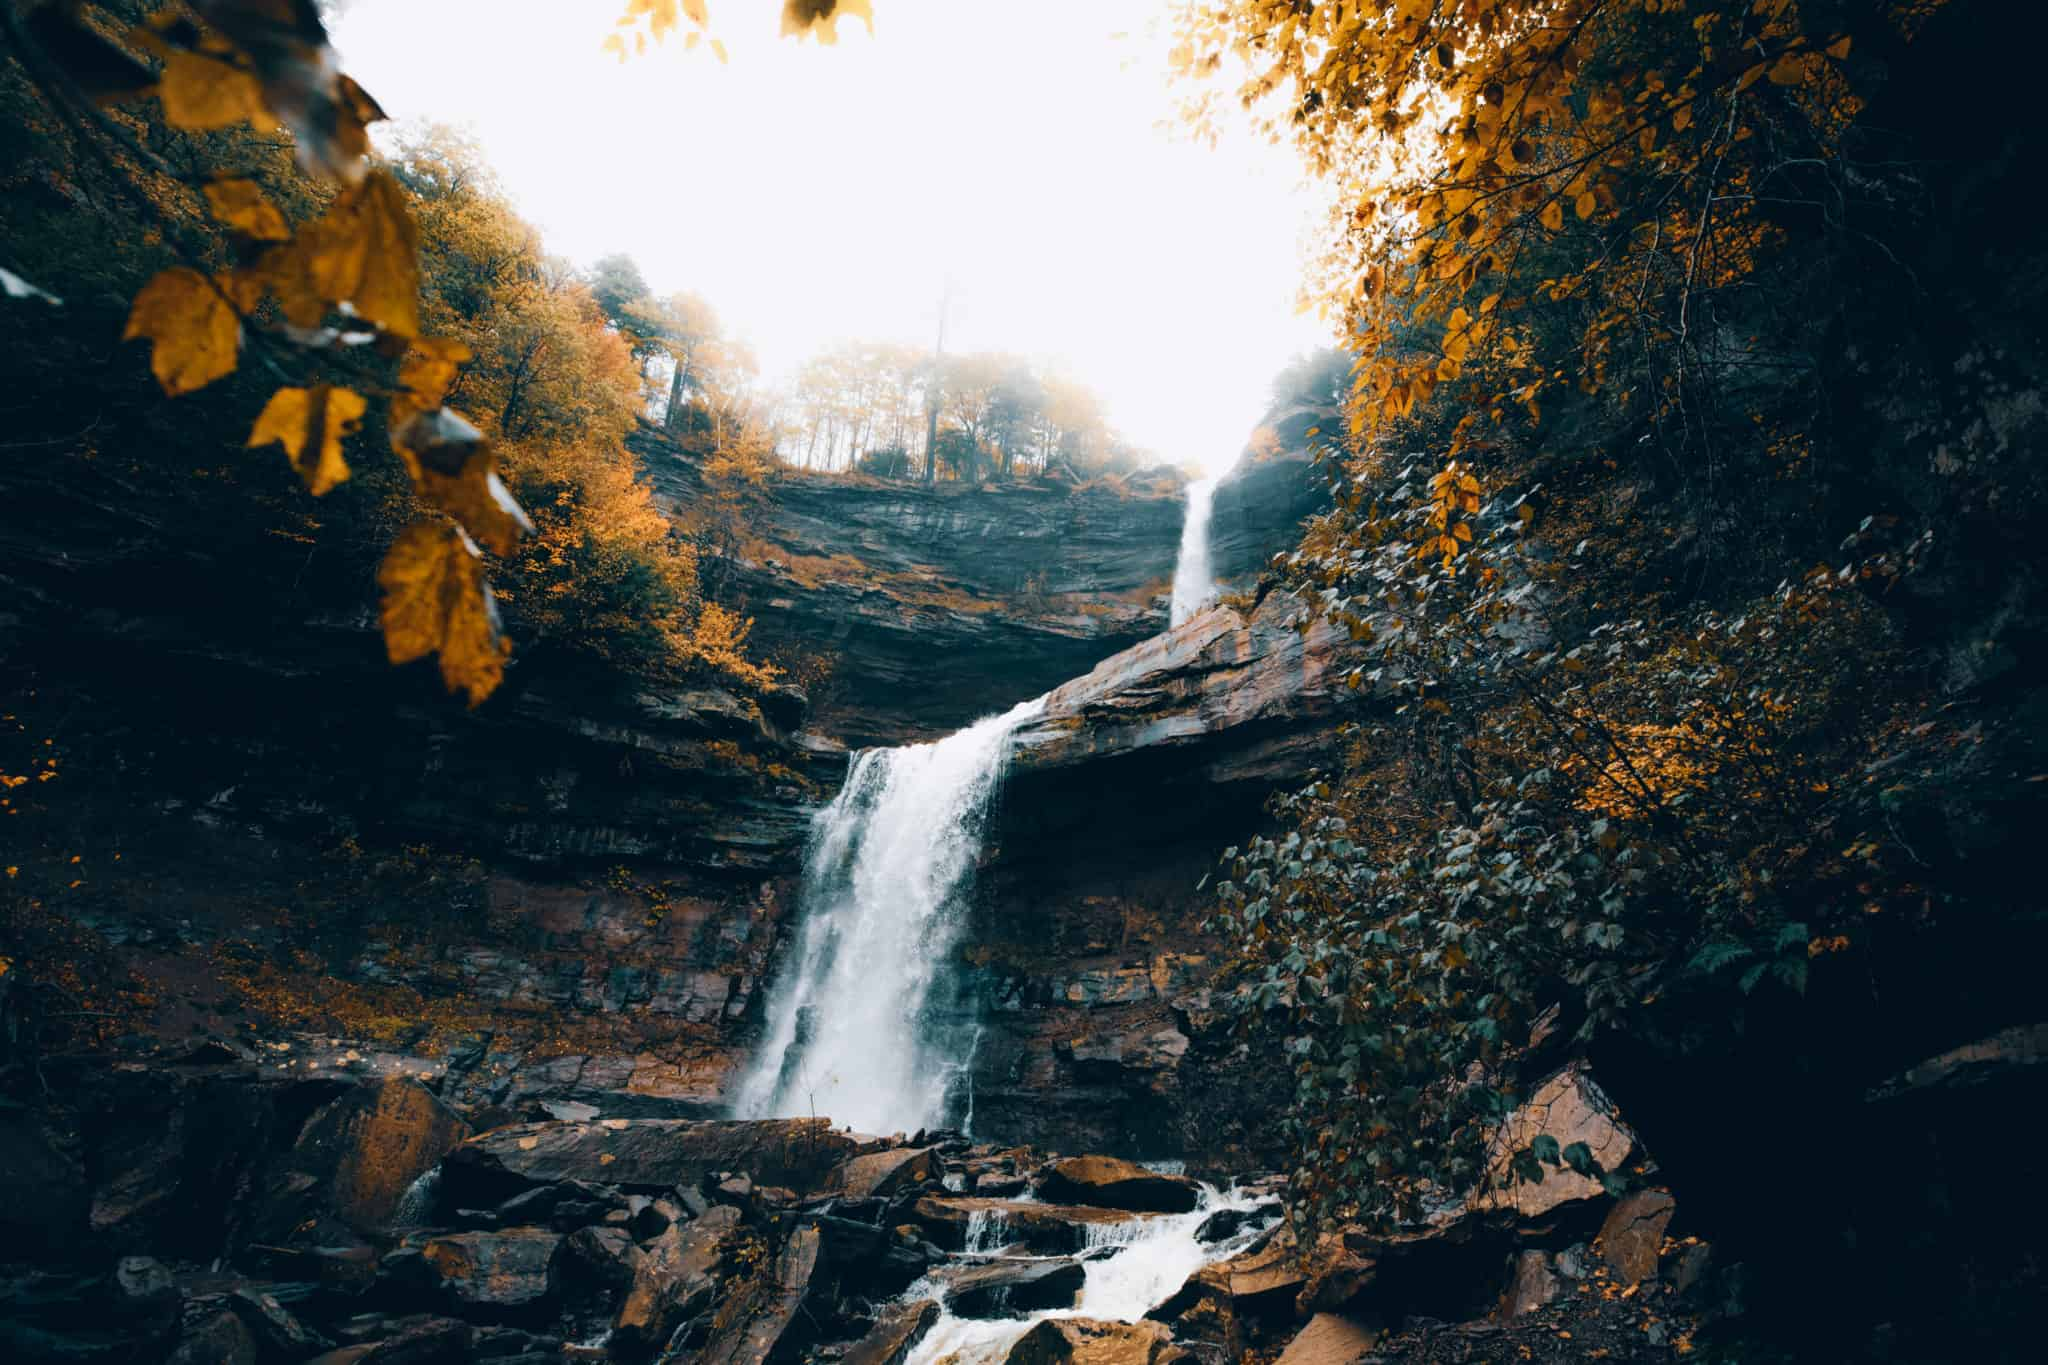 Kaaterskill Falls Hike In Upstate New York (Upper Trail) – The Complete Hiking Guide